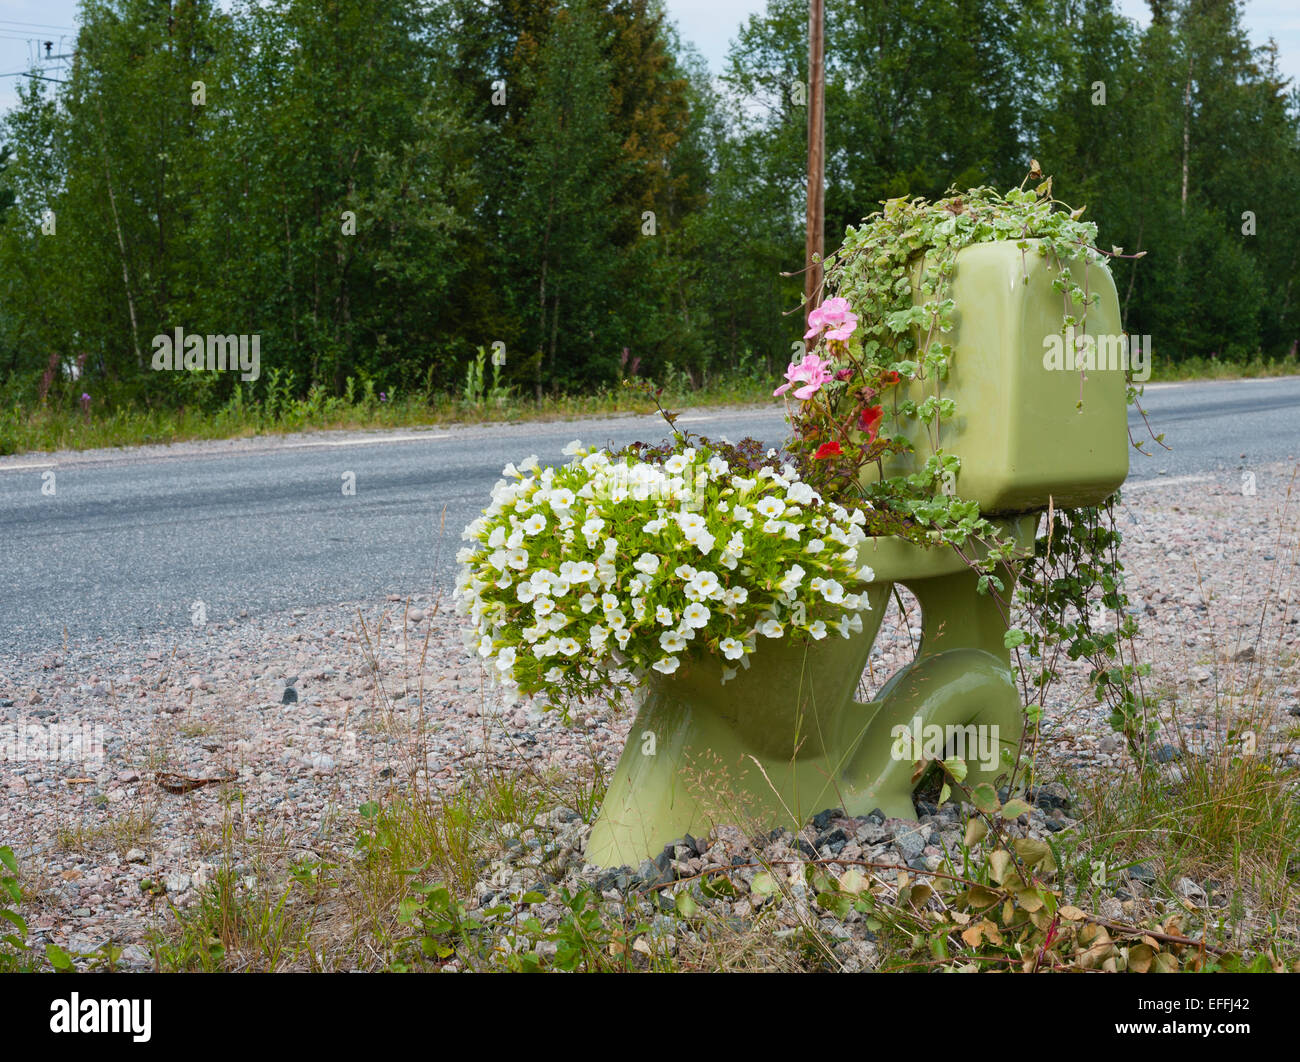 Sweden, Lapland, Norrbotten County, toilet with flowers at roadside - Stock Image